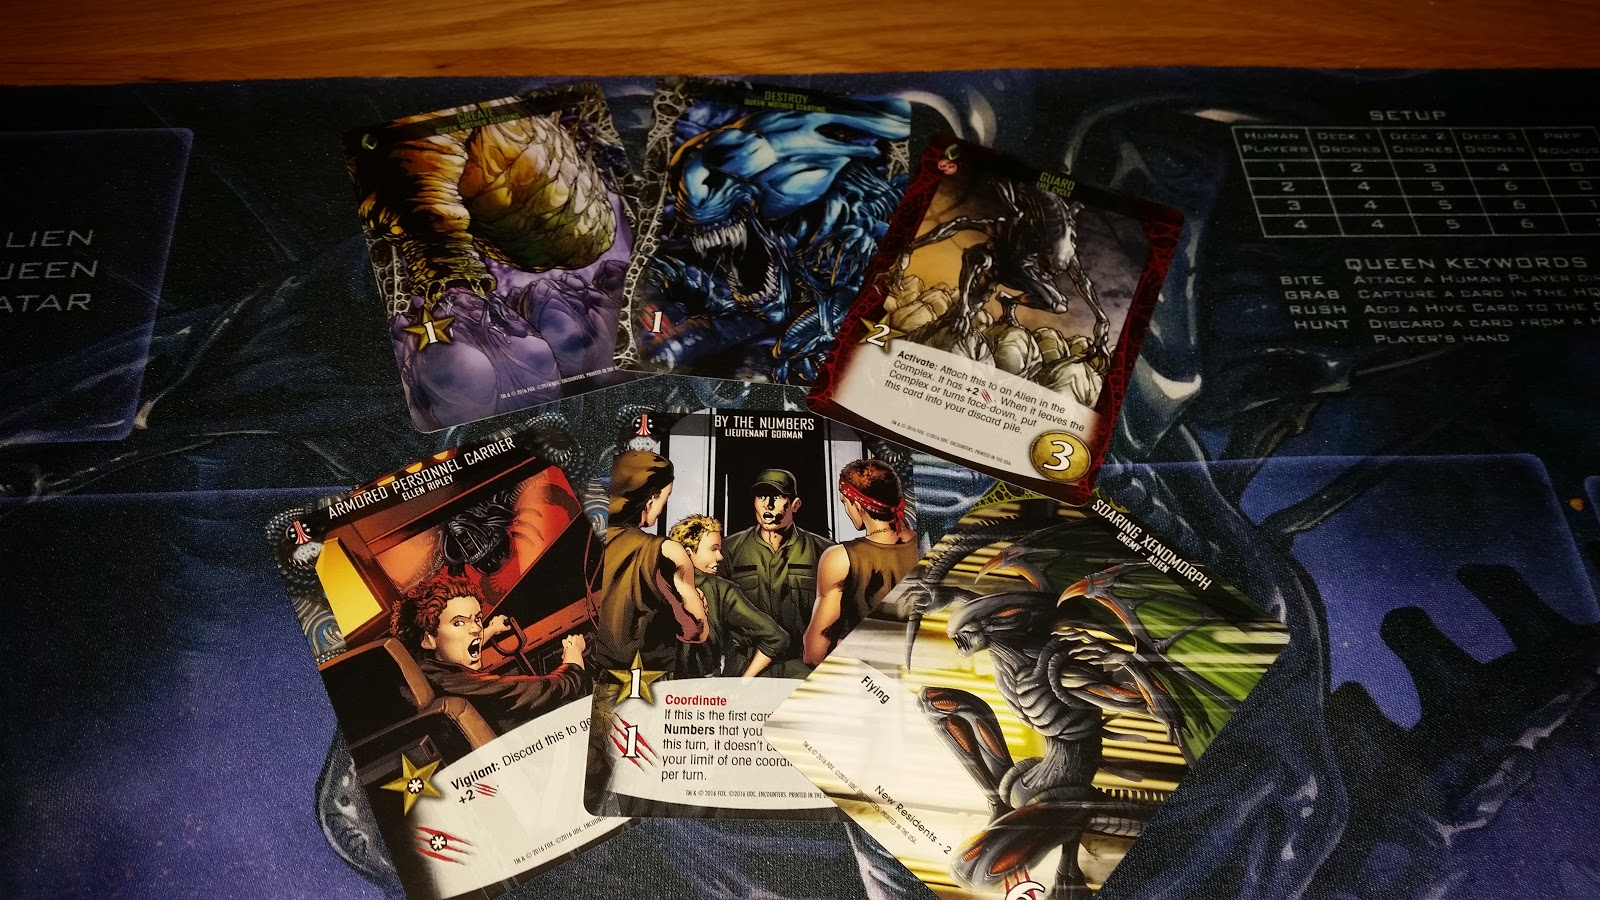 Legendary encounters Alien expansion from Upper Deck games